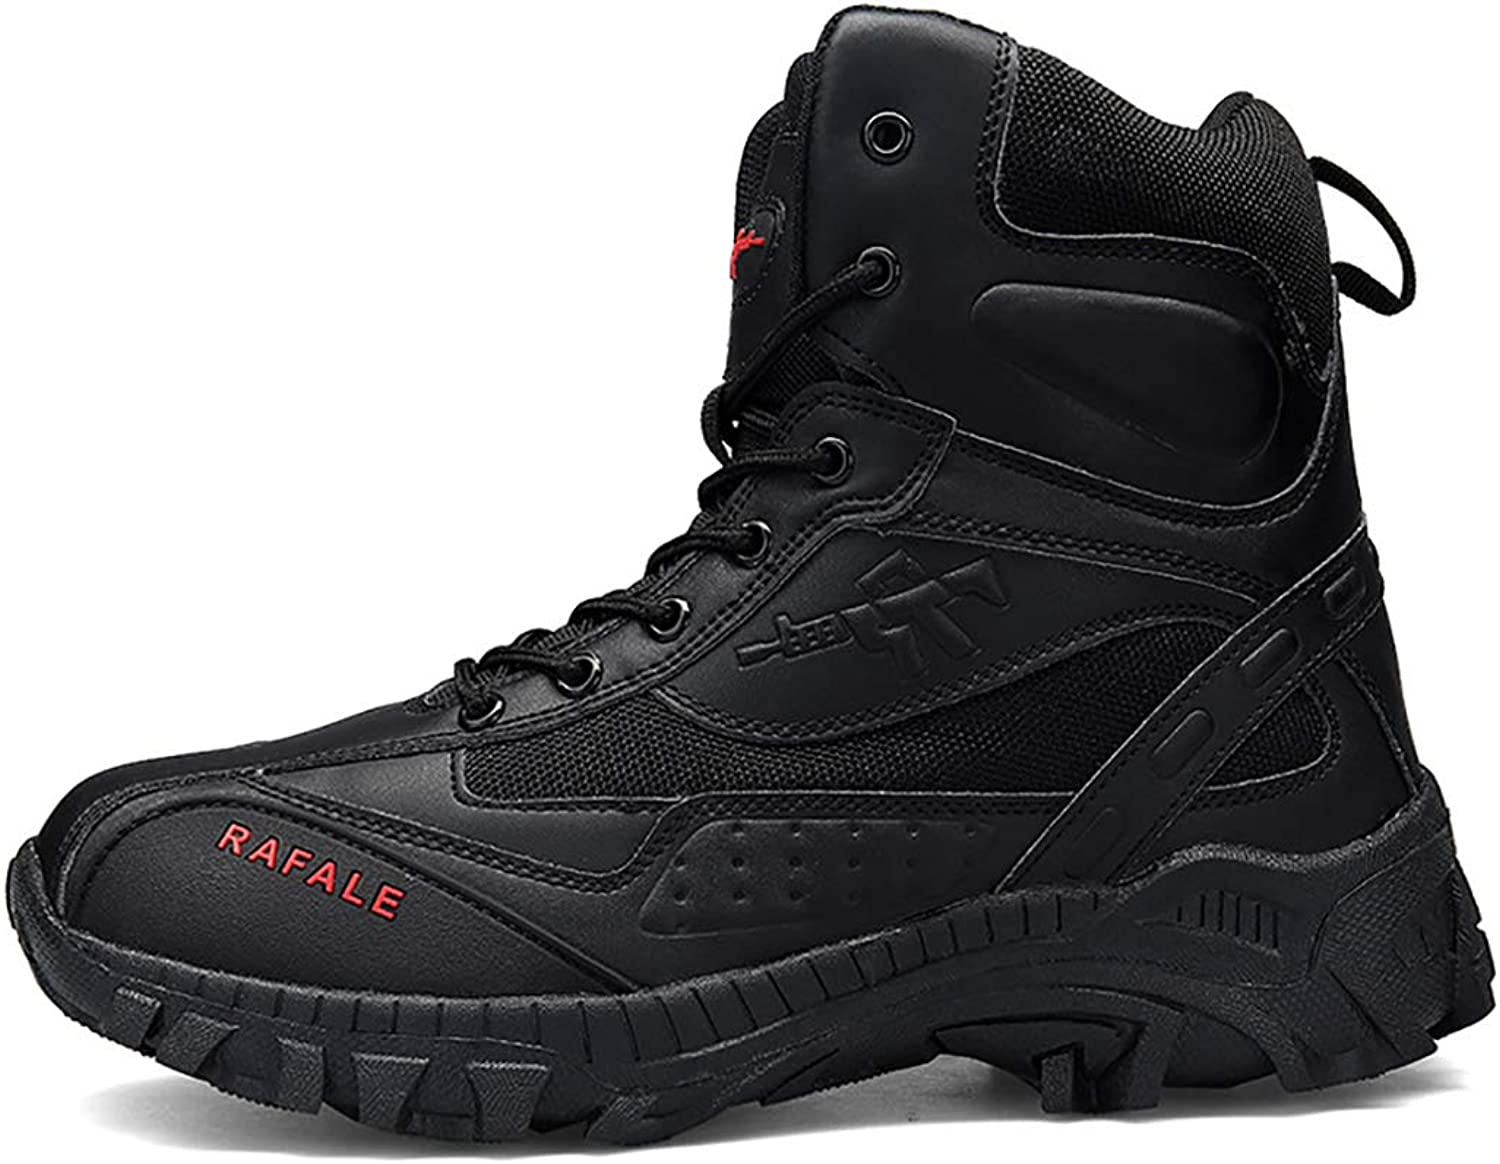 Mzq-yq Tactical Boots Tactical shoes Summer Outdoor Desert Army Fan High To Help Desert Boots Men's Large Size 44,45